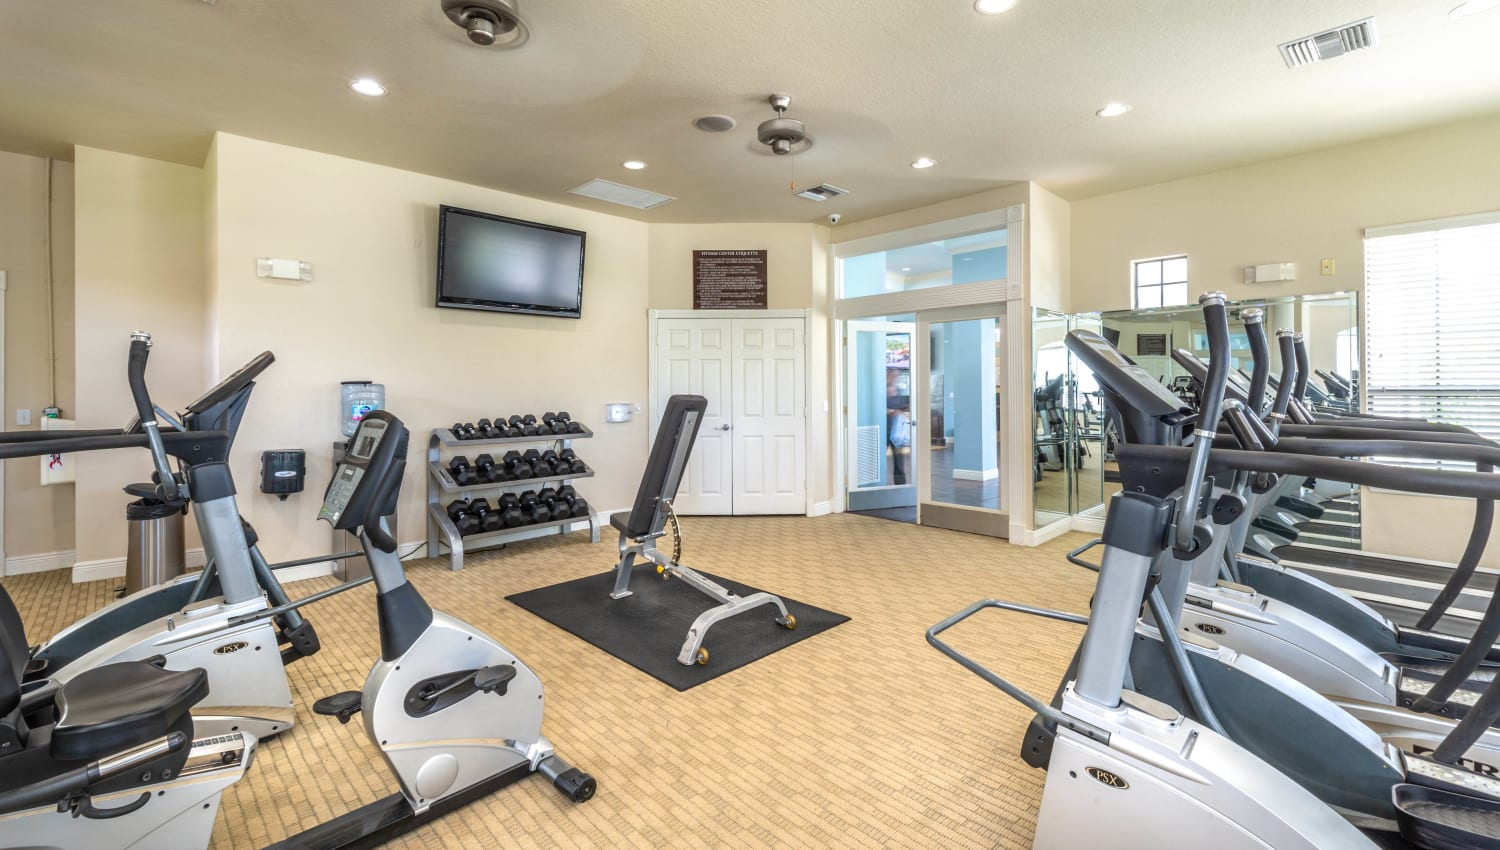 Treadmills and more in the fitness center at Mirador & Stovall at River City in Jacksonville, Florida